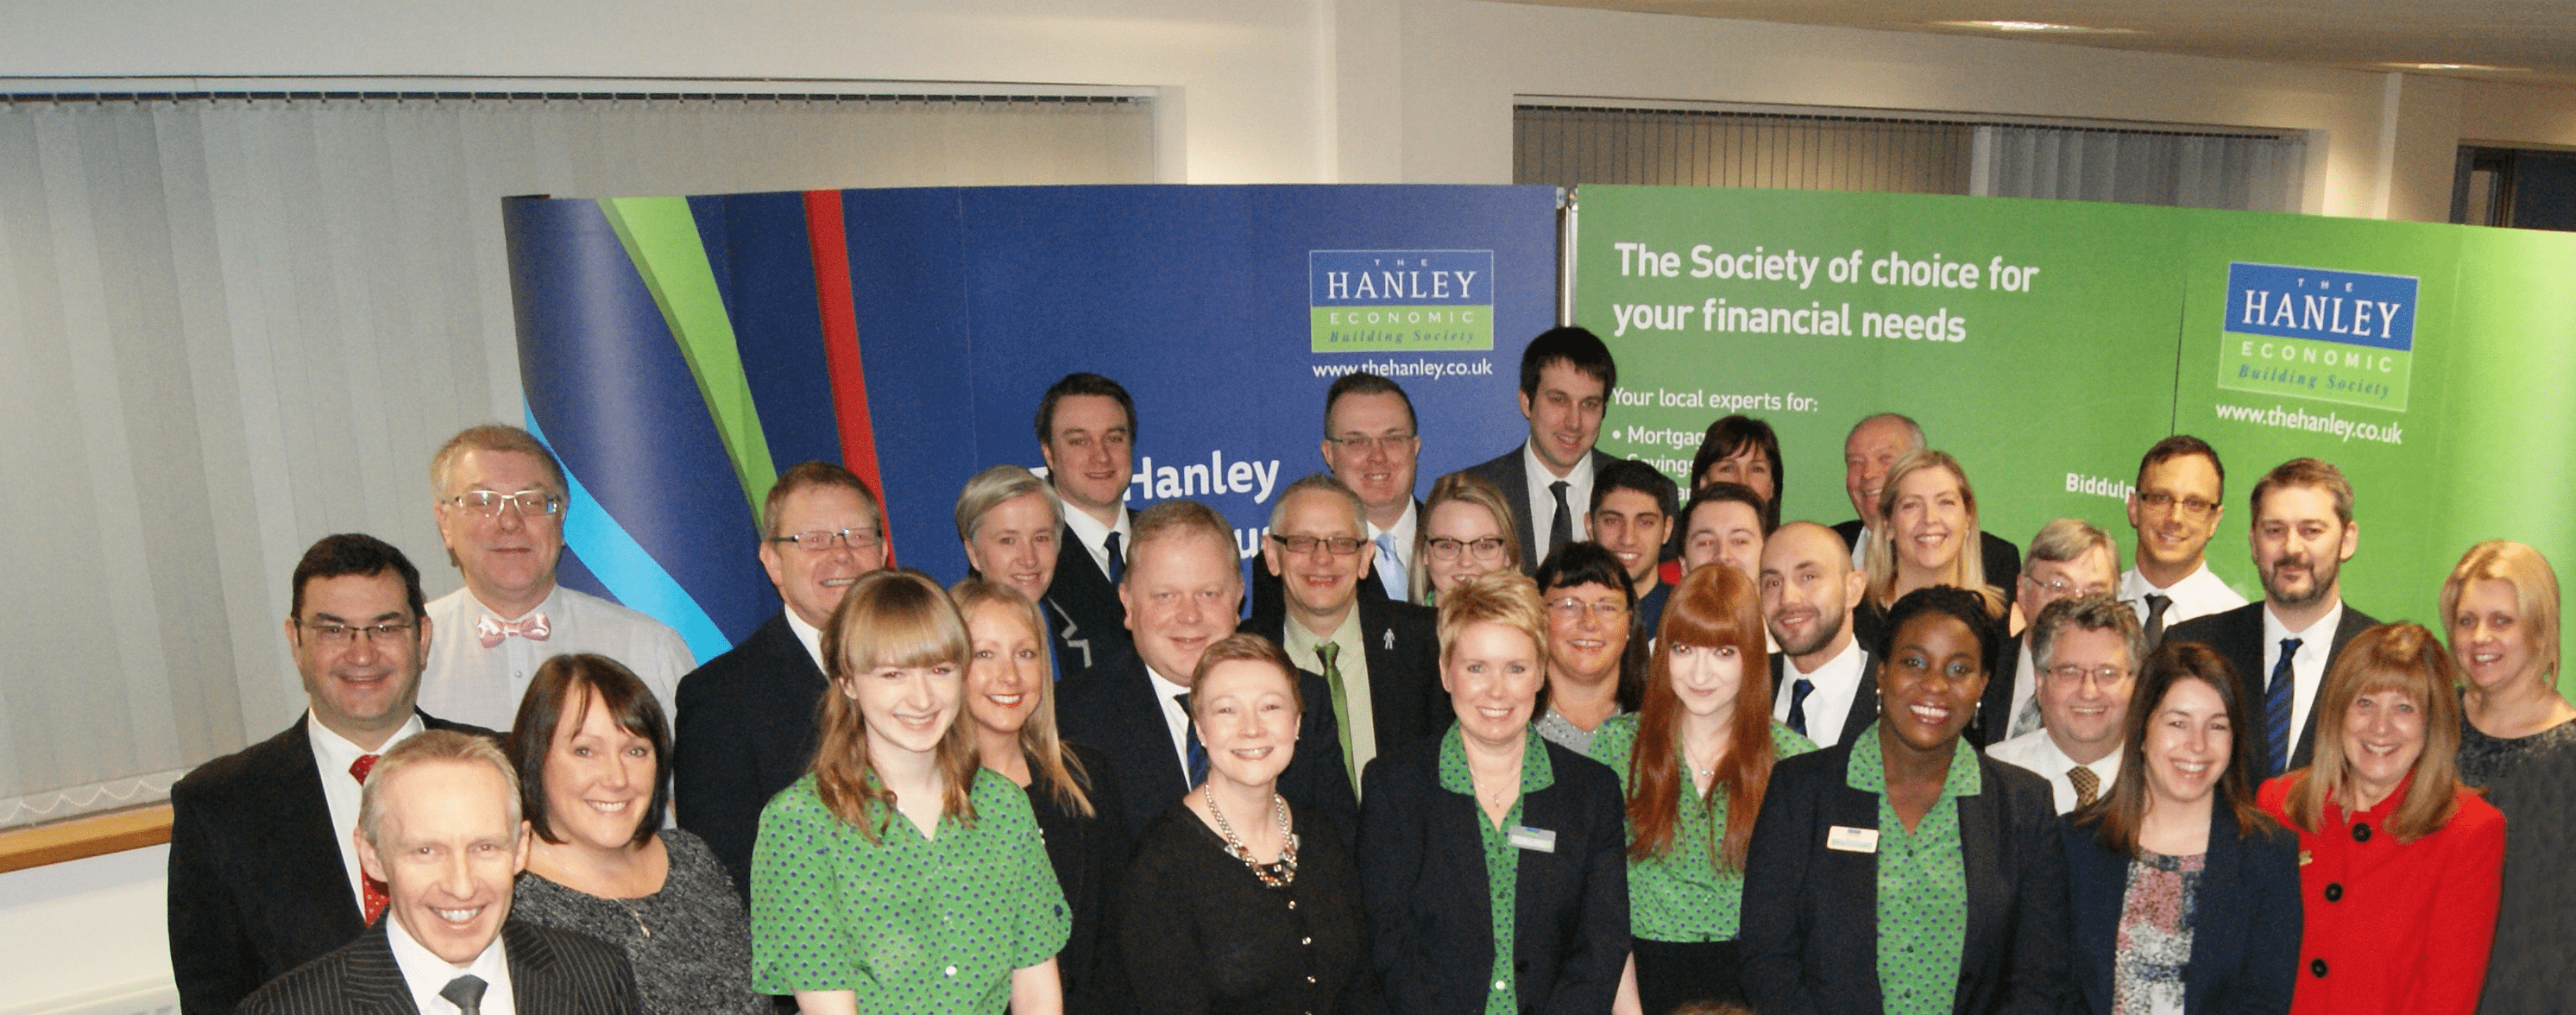 Hanley Economic Building Society Intermediaries